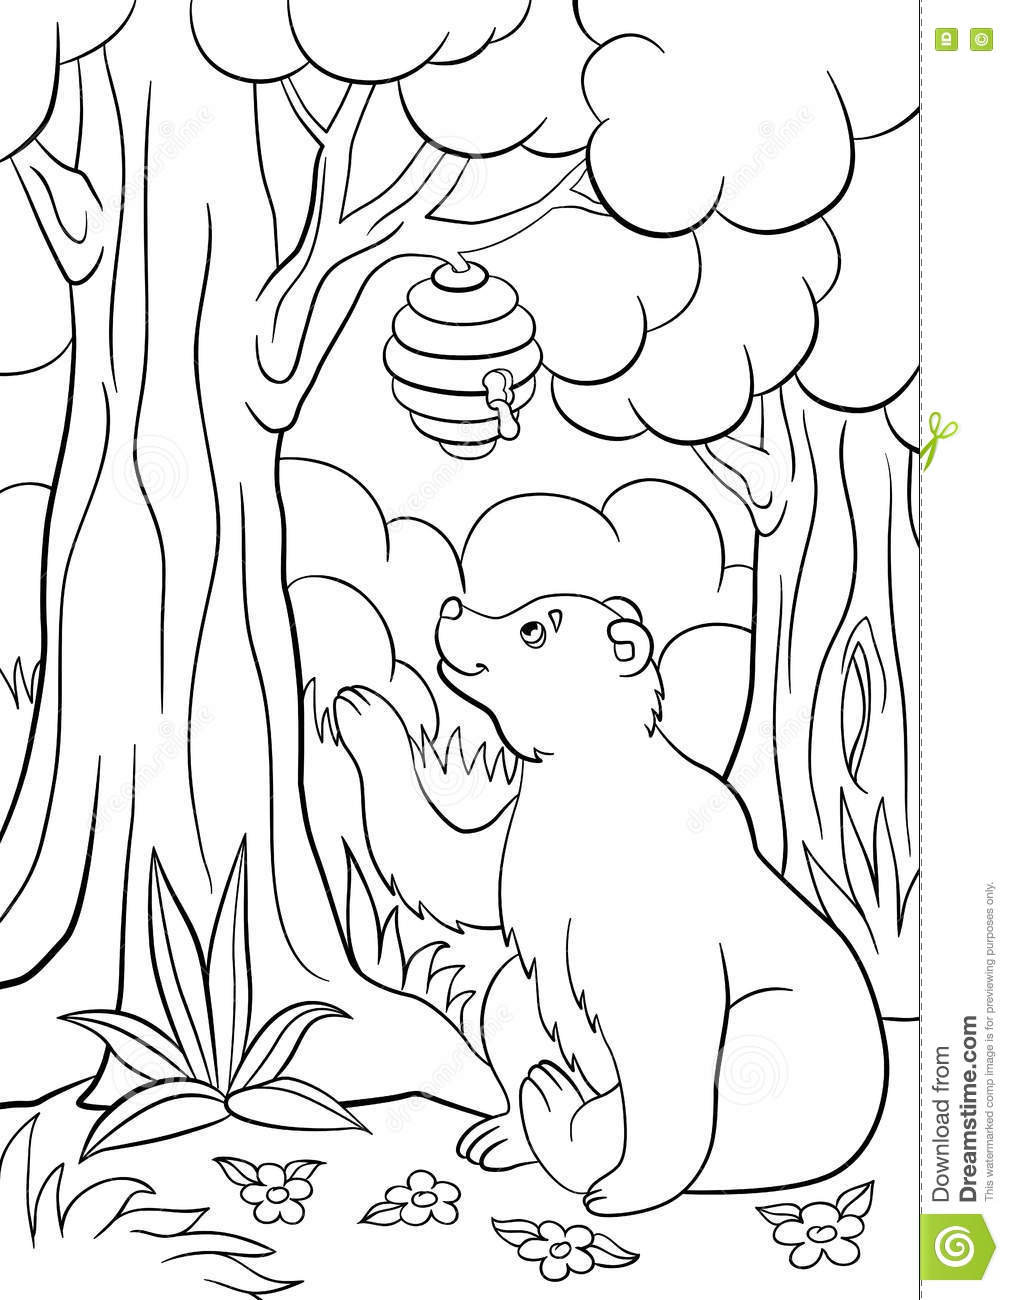 colouring wild animals coloring pages wild animals cute bear looks at the hive wild colouring animals